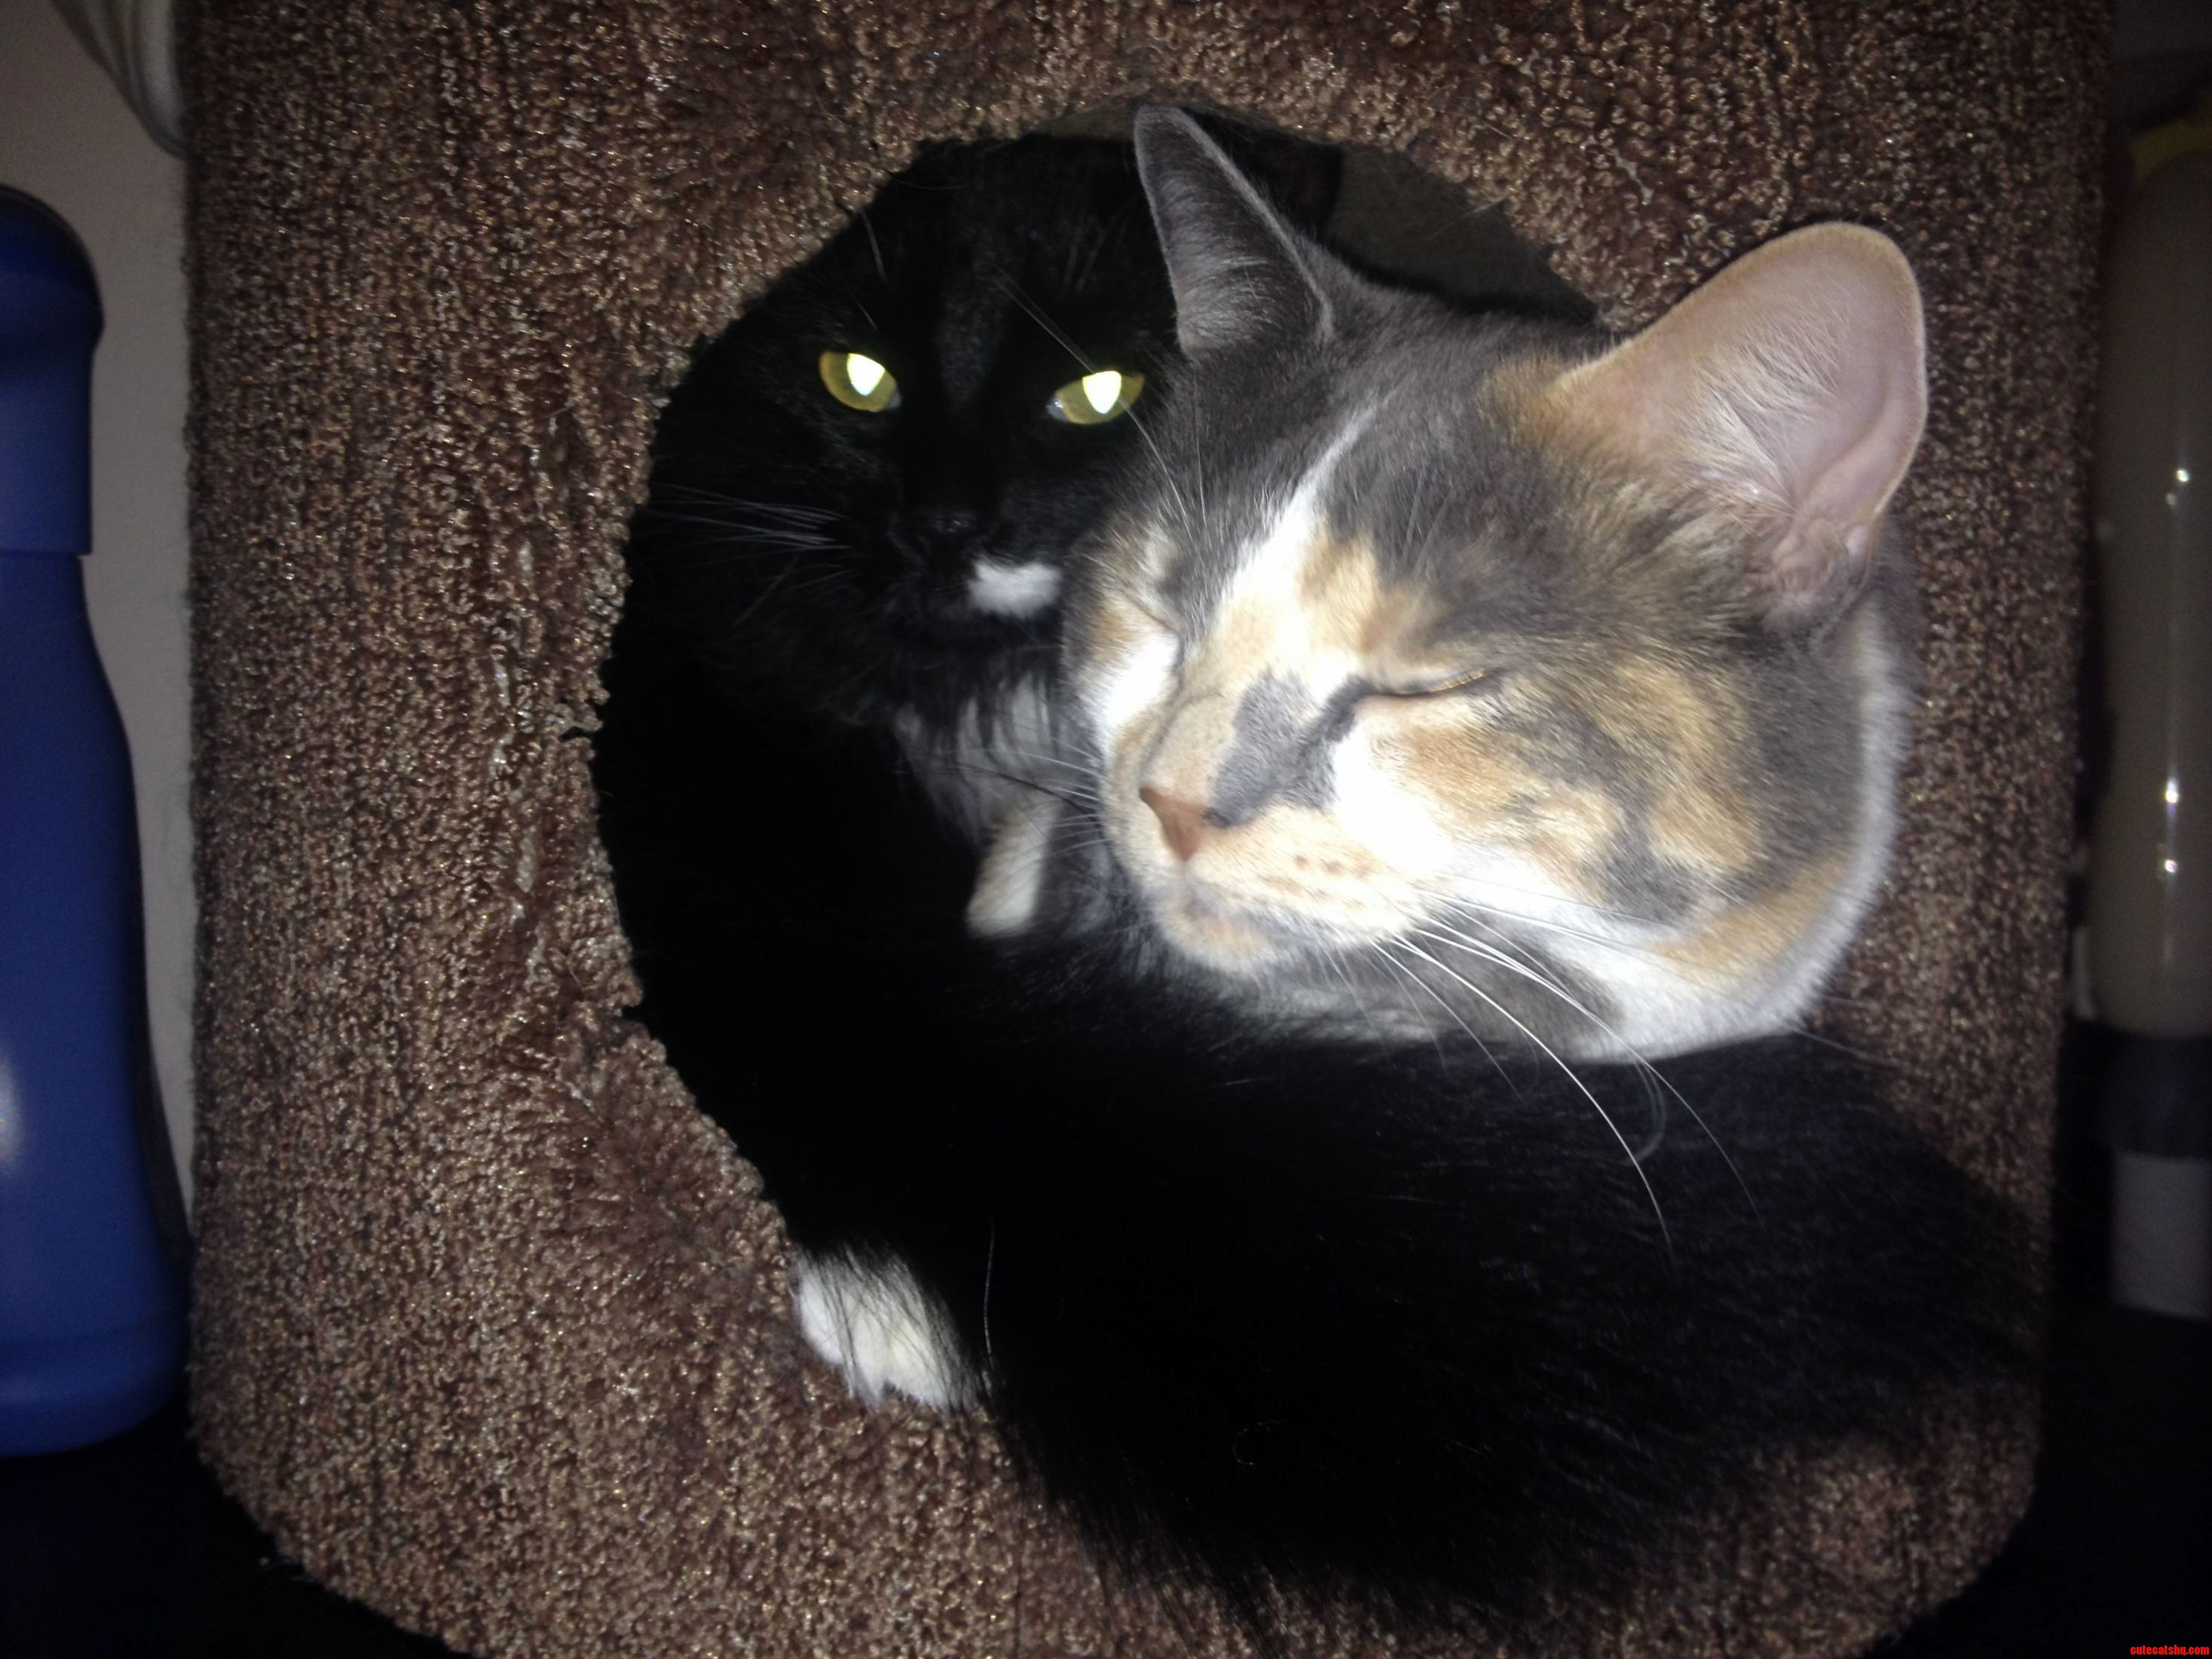 After Waiting Four Months For Our Two Cats To Cuddle Together Inside The Kitty Condo The Wait Is Over.